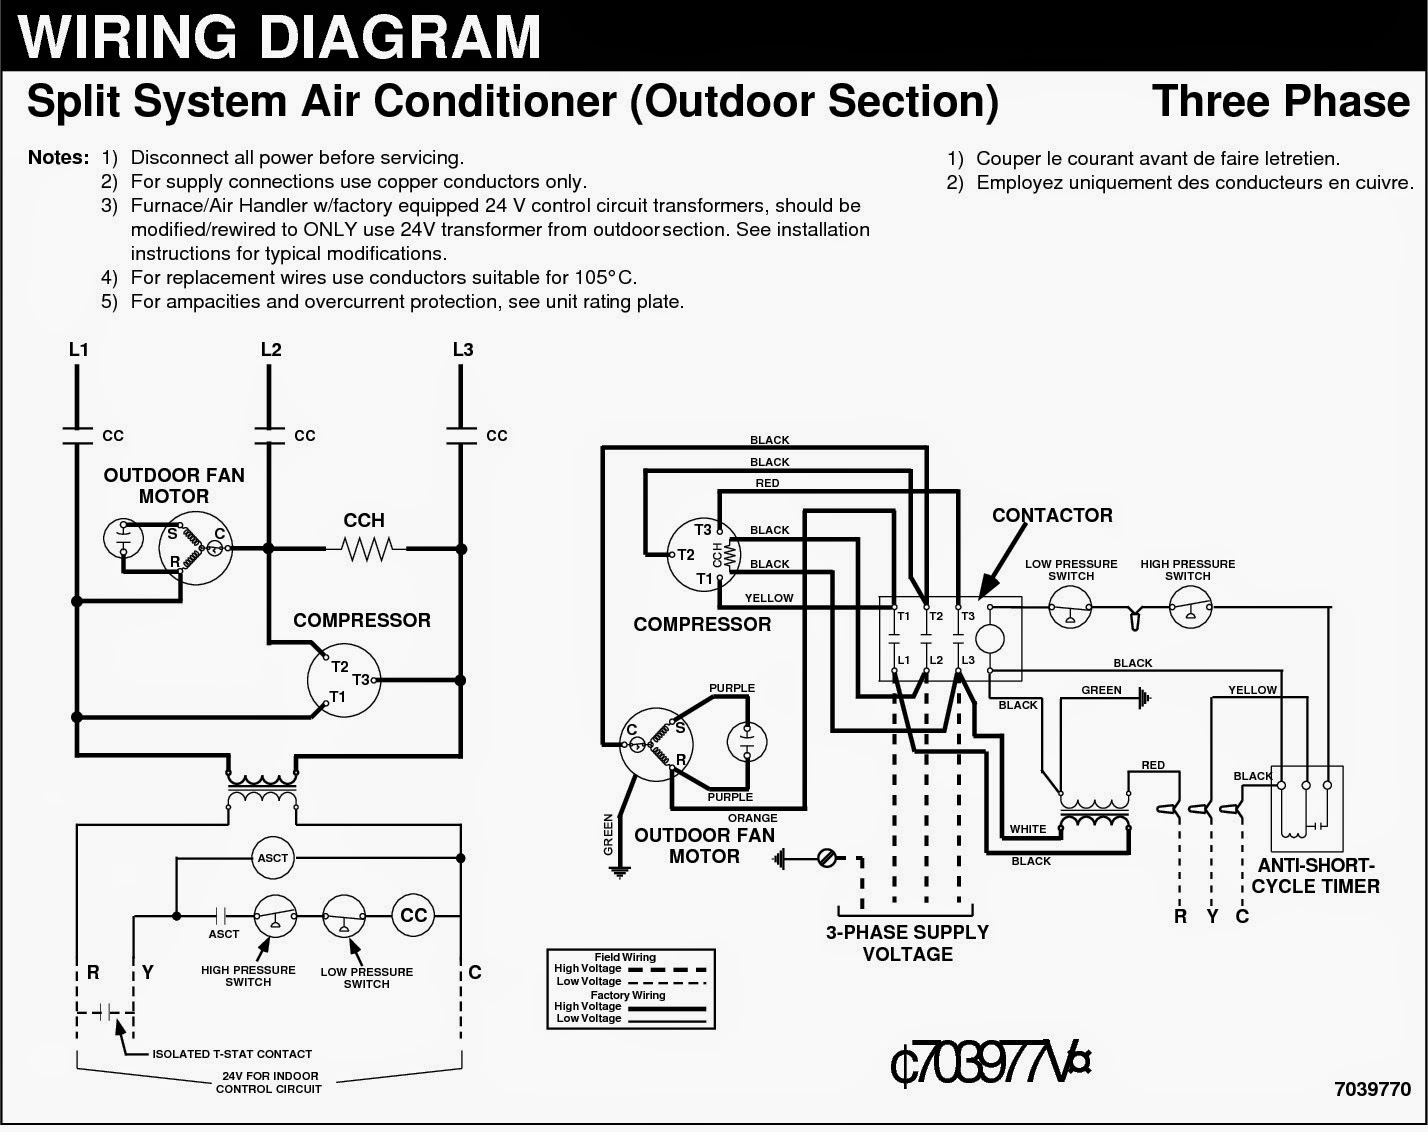 ac wiring diagram data wiring diagram u2022 rh vitaleapp co ac house wiring colors ac house wiring color code